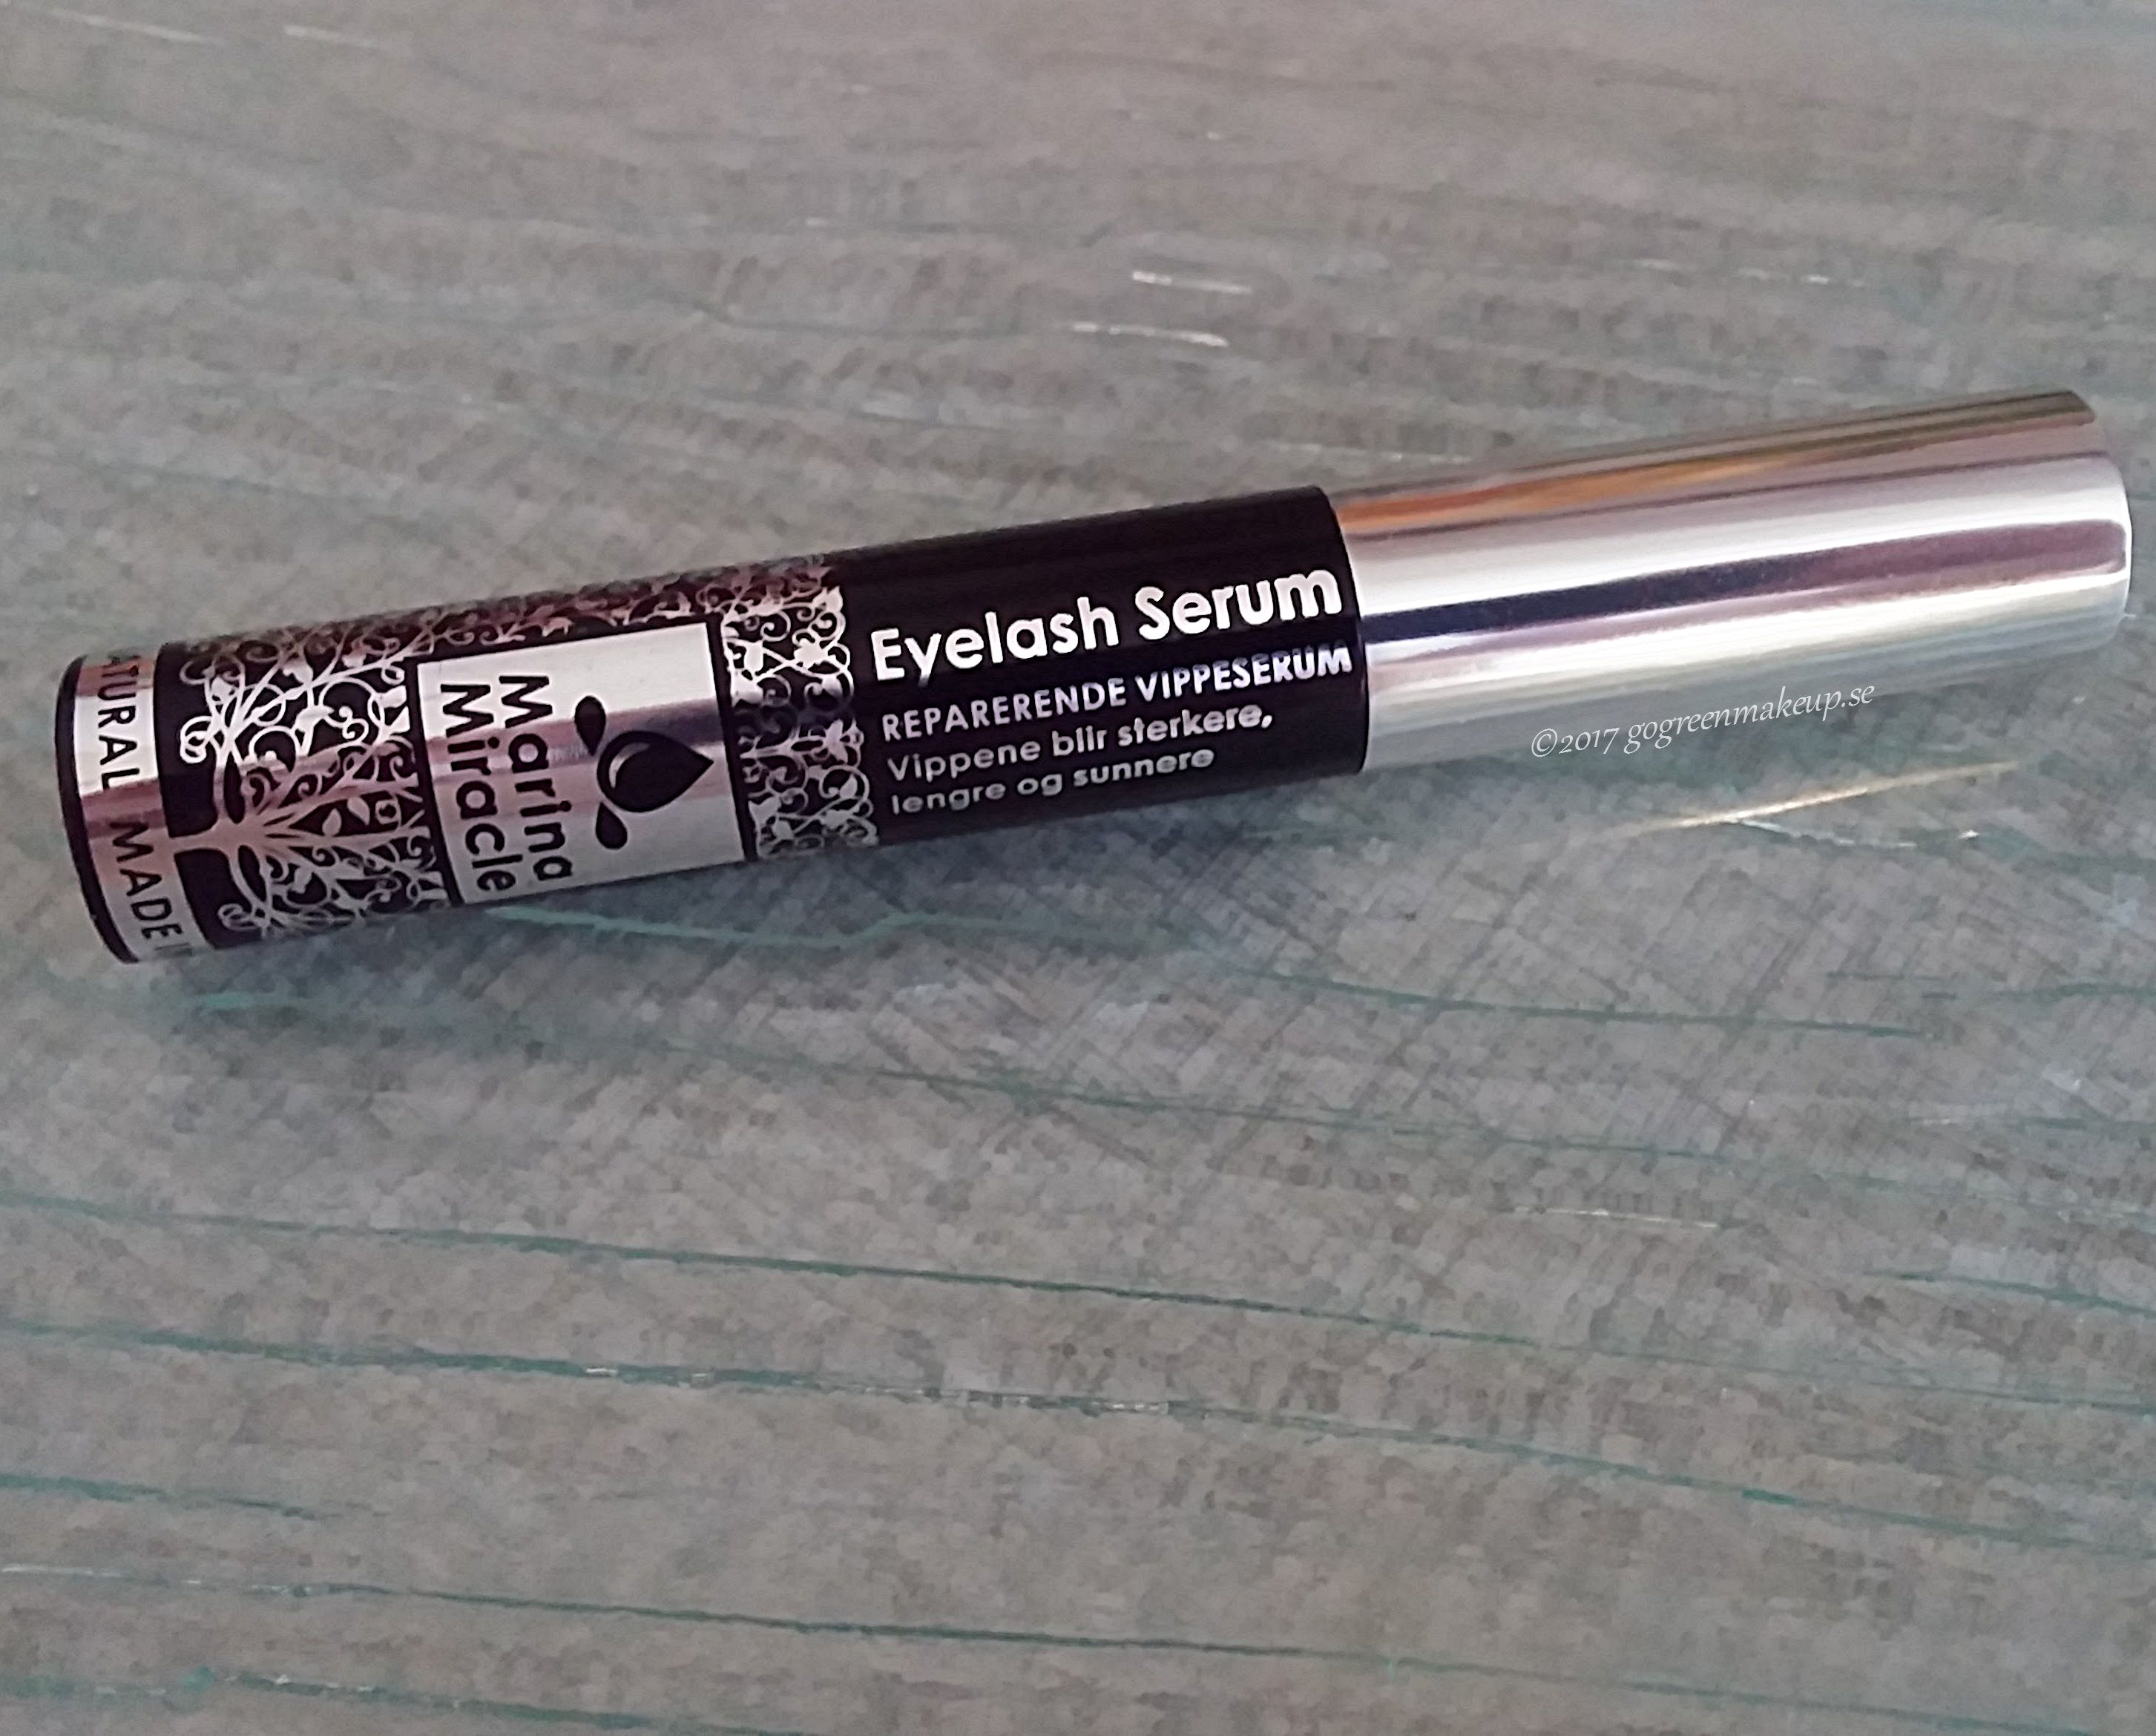 Eye Lash Serum